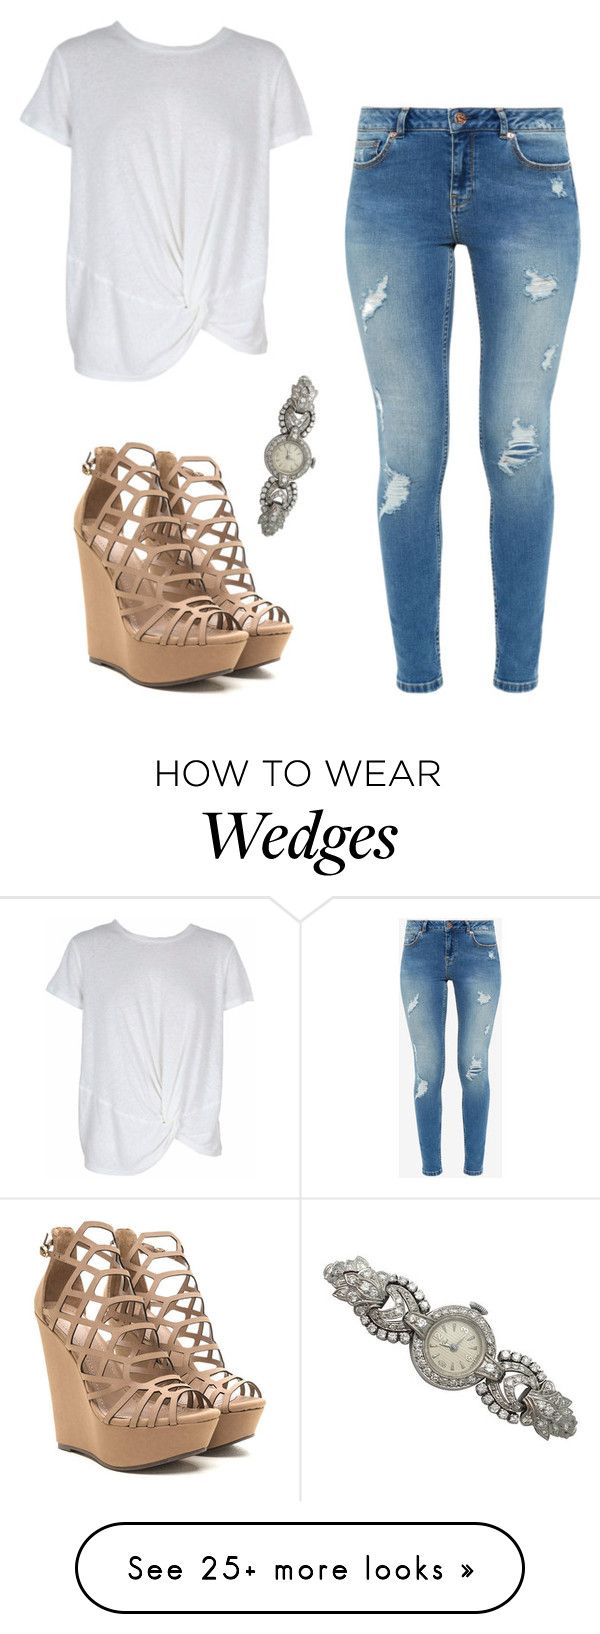 """Untitled #1961"" by vireheart on Polyvore featuring Ted Baker and MINKPINK"